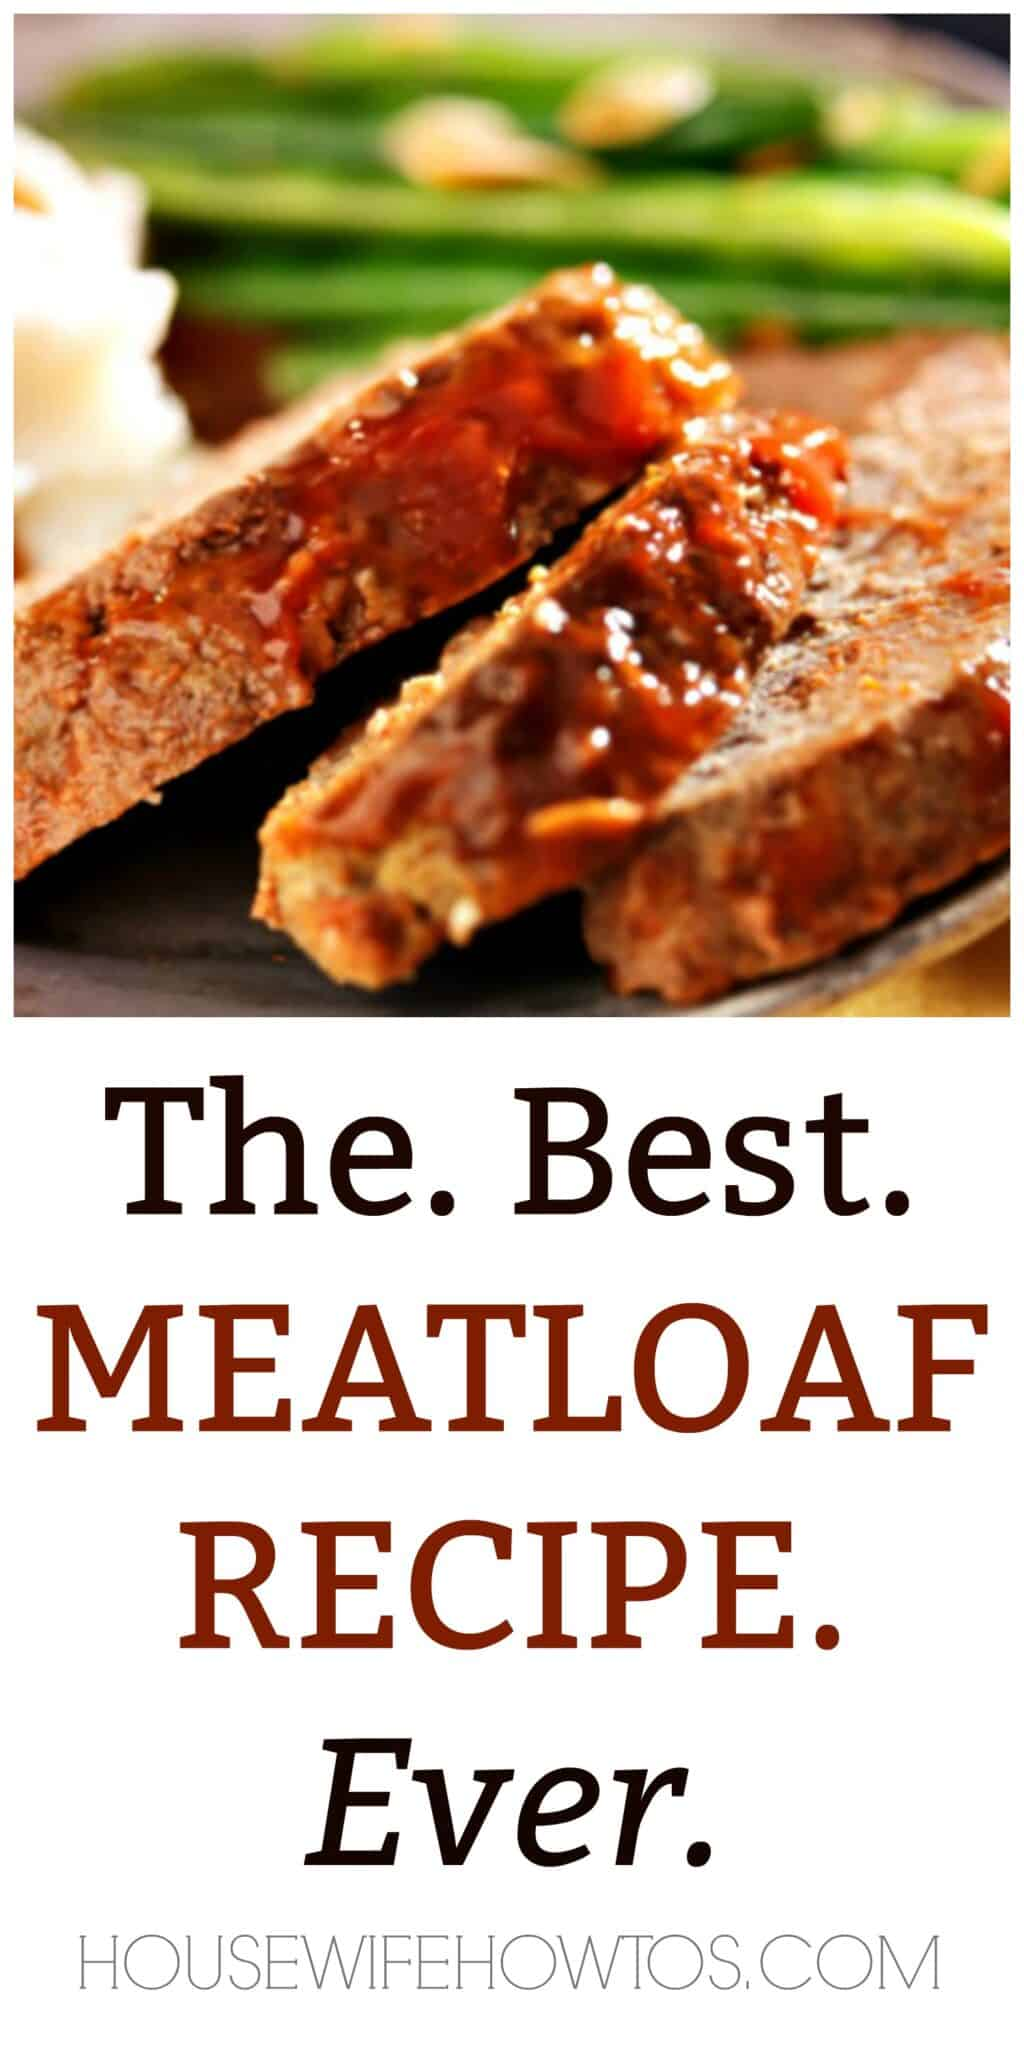 Two Fat Ladies Meatloaf Recipe - Cooking Index